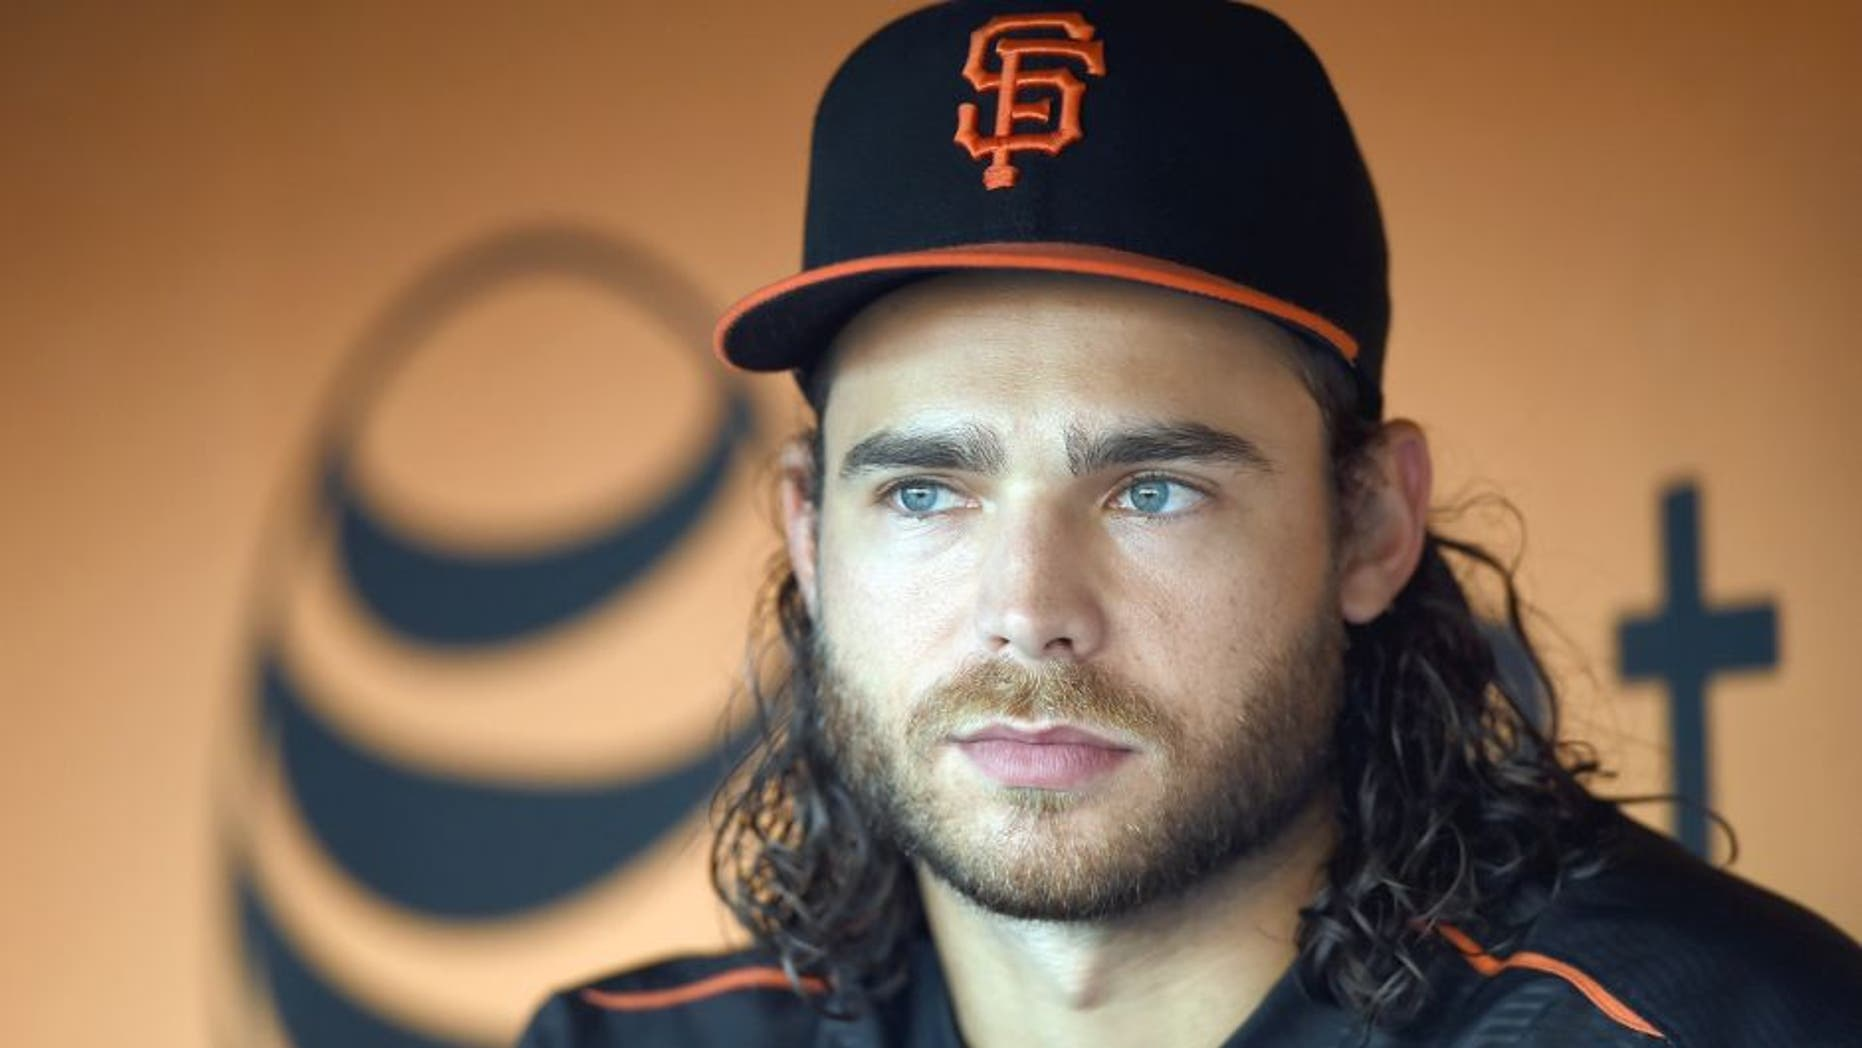 SAN FRANCISCO, CA - AUGUST 25: Brandon Crawford #35 of the San Francisco Giants looks on from the dugout during batting practice prior to playing the Chicago Cubs at AT&T Park on August 25, 2015 in San Francisco, California. (Photo by Thearon W. Henderson/Getty Images)